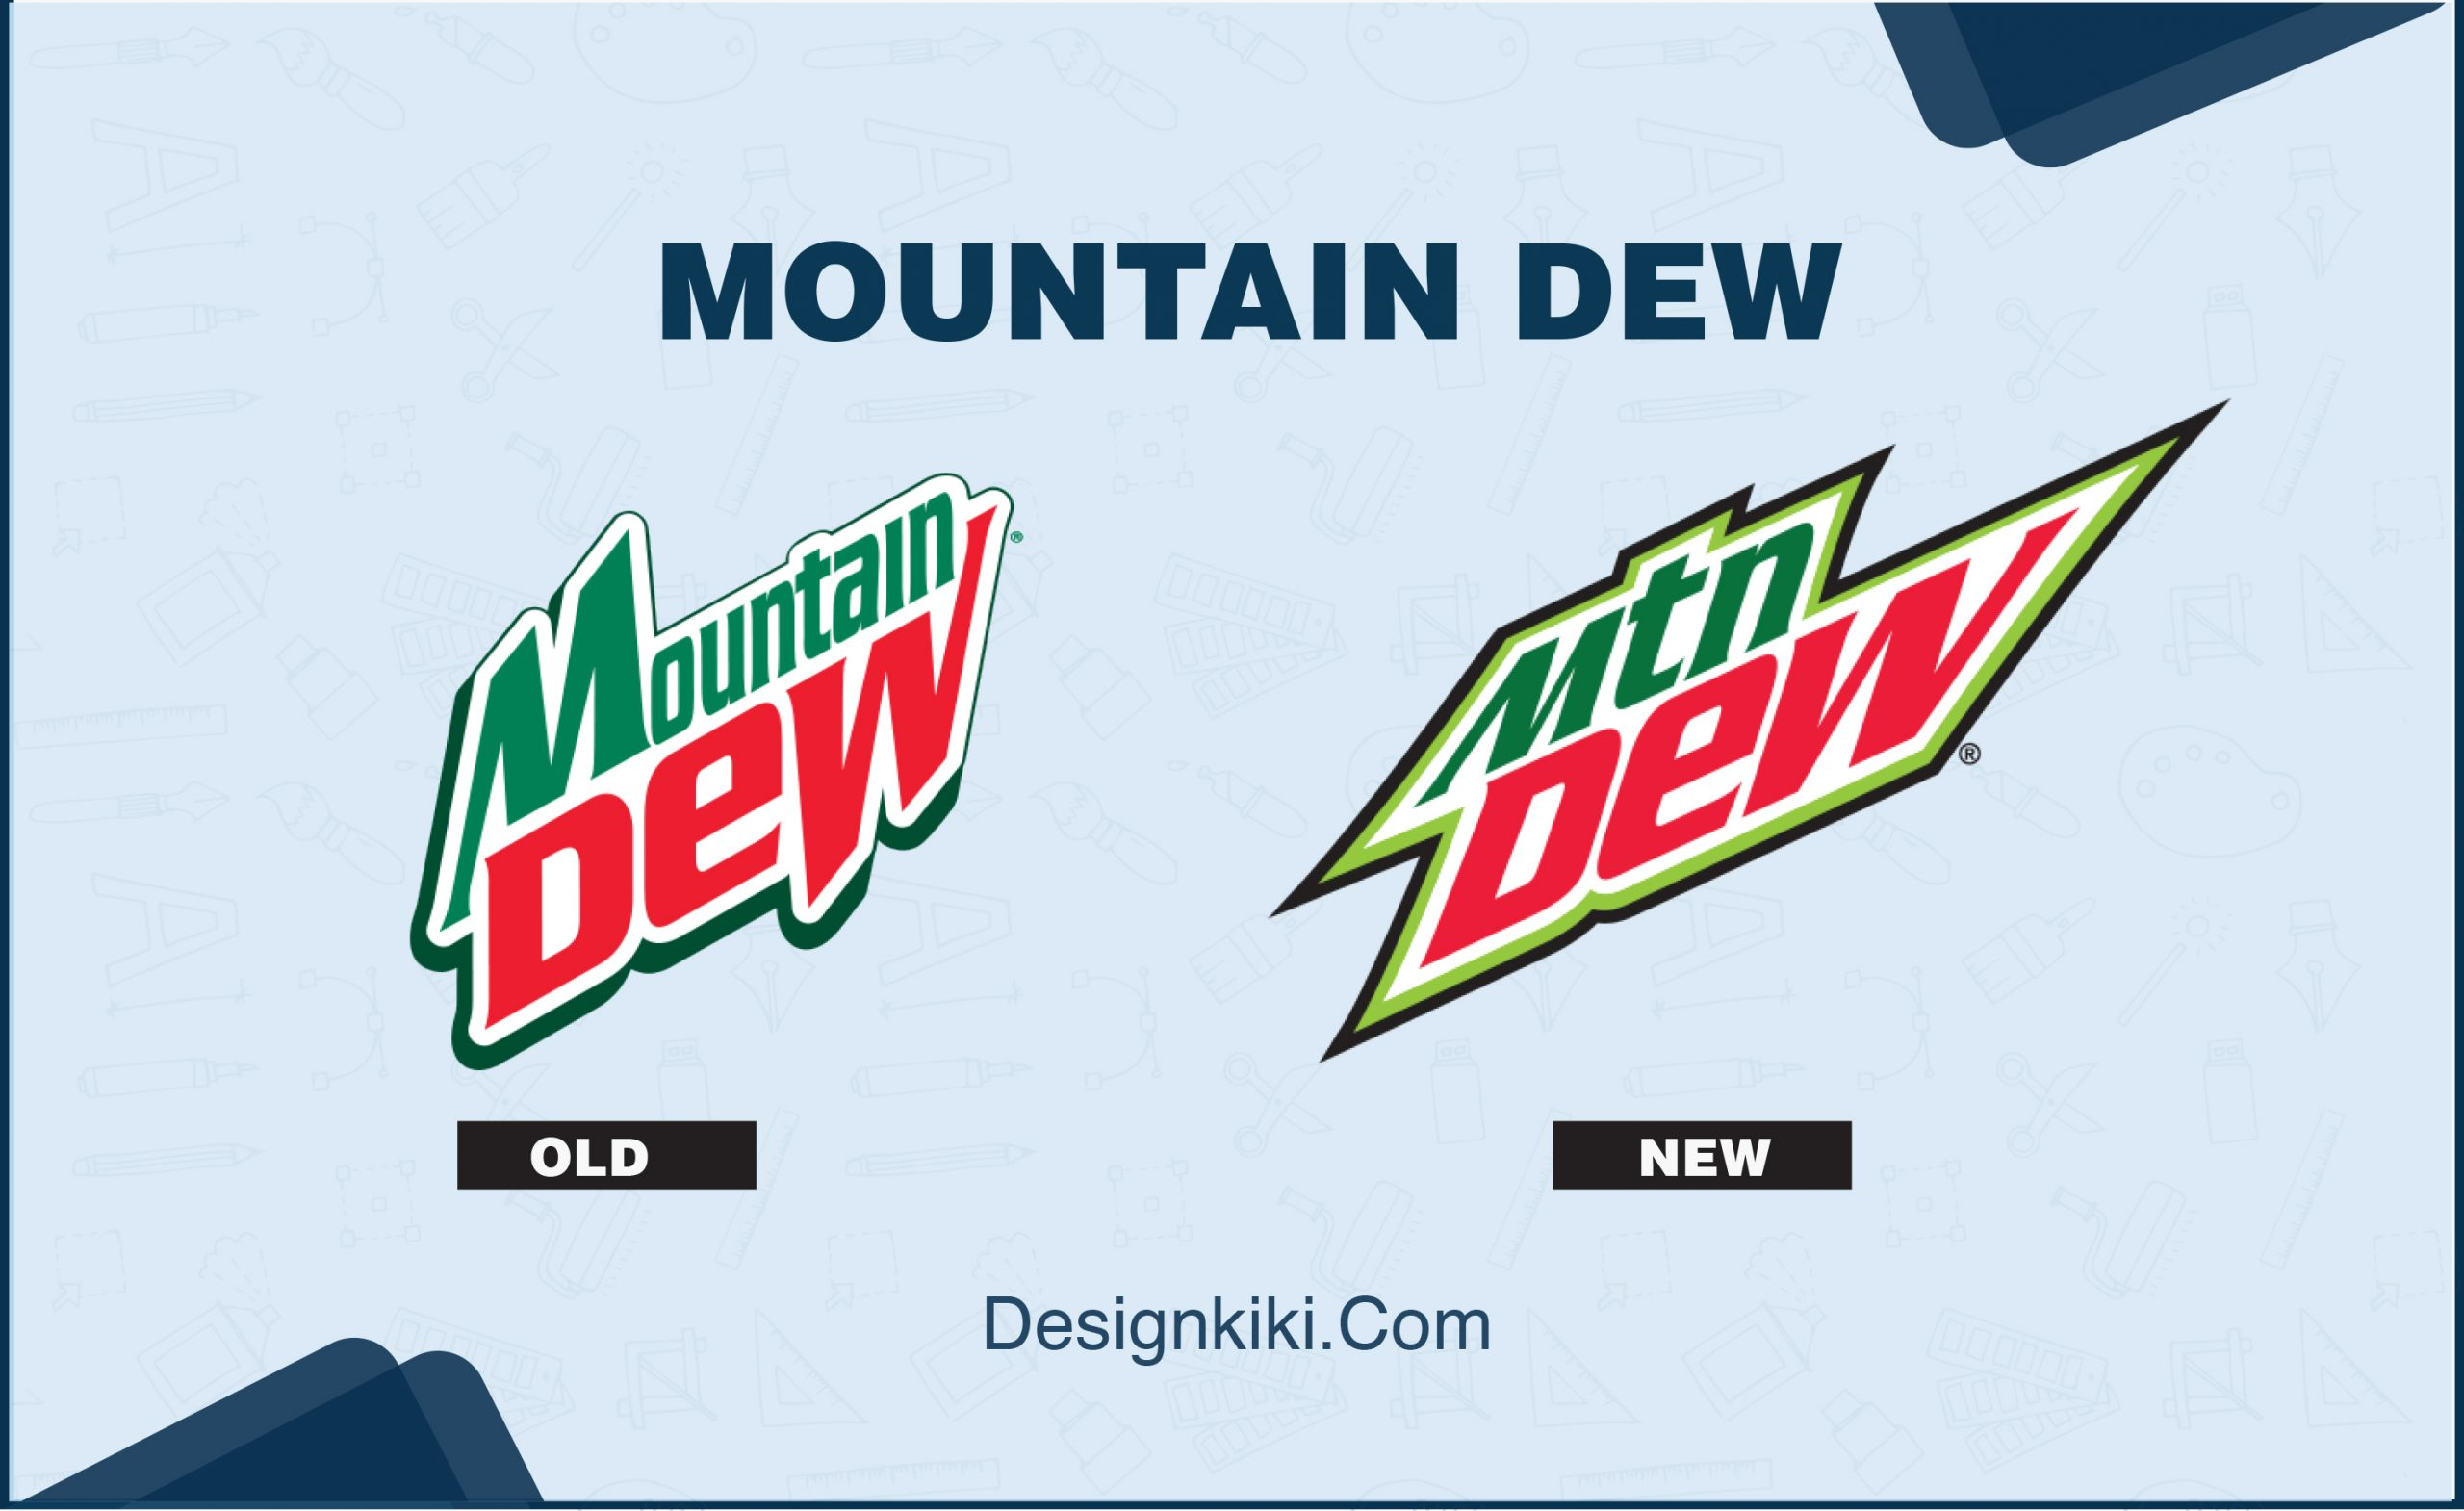 Mountain Dew logo before and after redesign